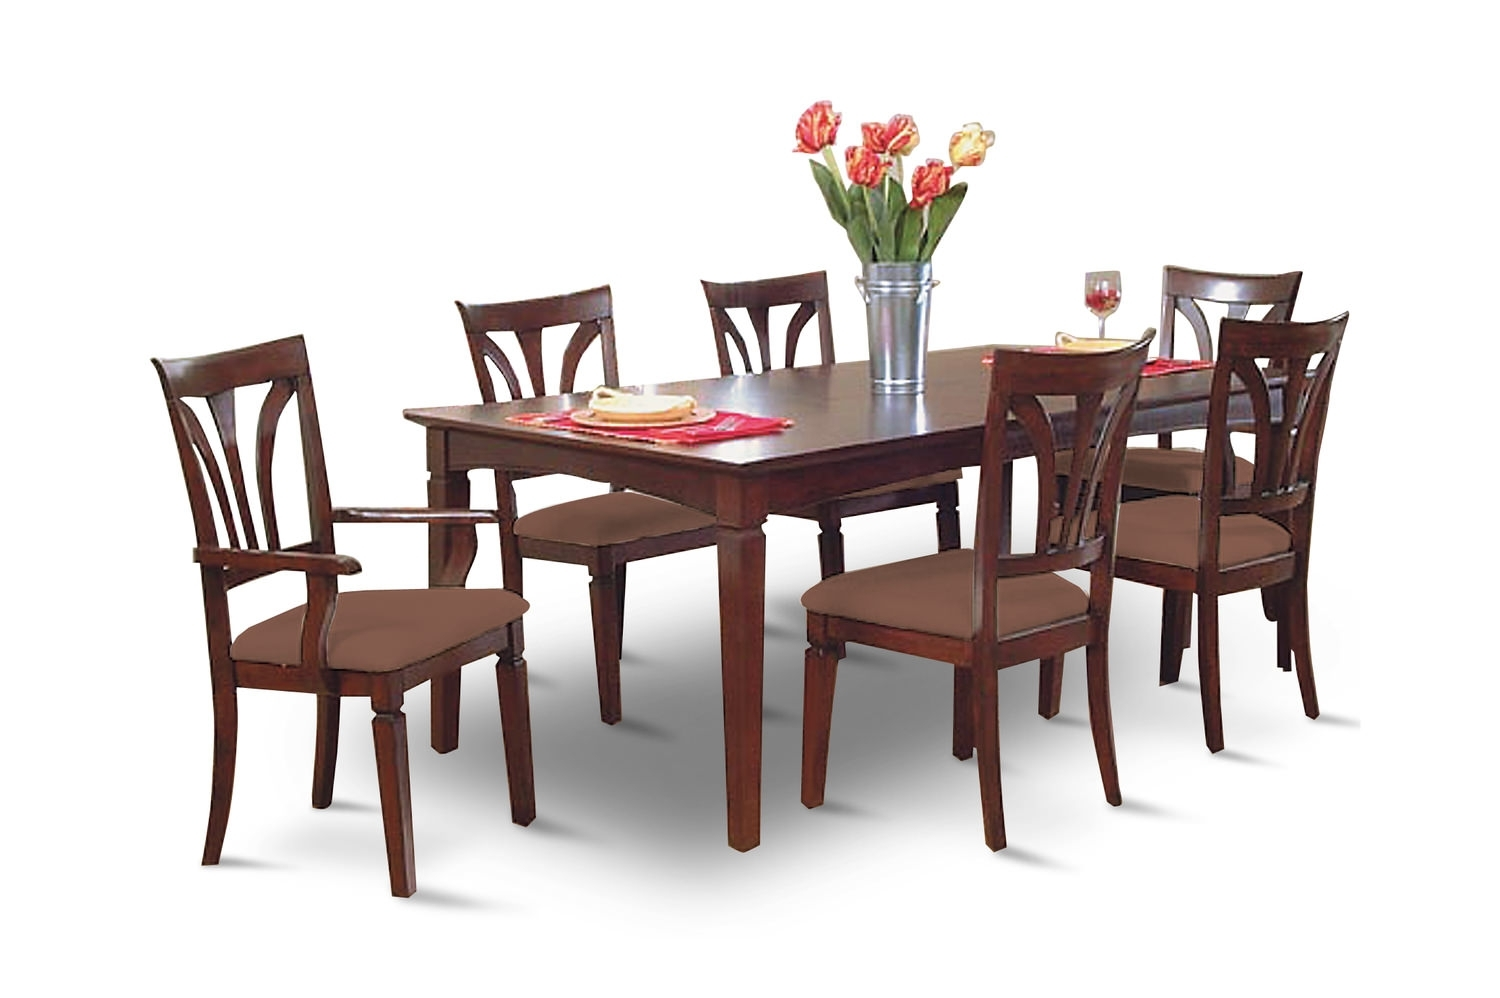 Dining Sets – Kitchen & Dining Room Sets – Hom Furniture Within Most Recent Chapleau Ii 9 Piece Extension Dining Tables With Side Chairs (View 8 of 20)